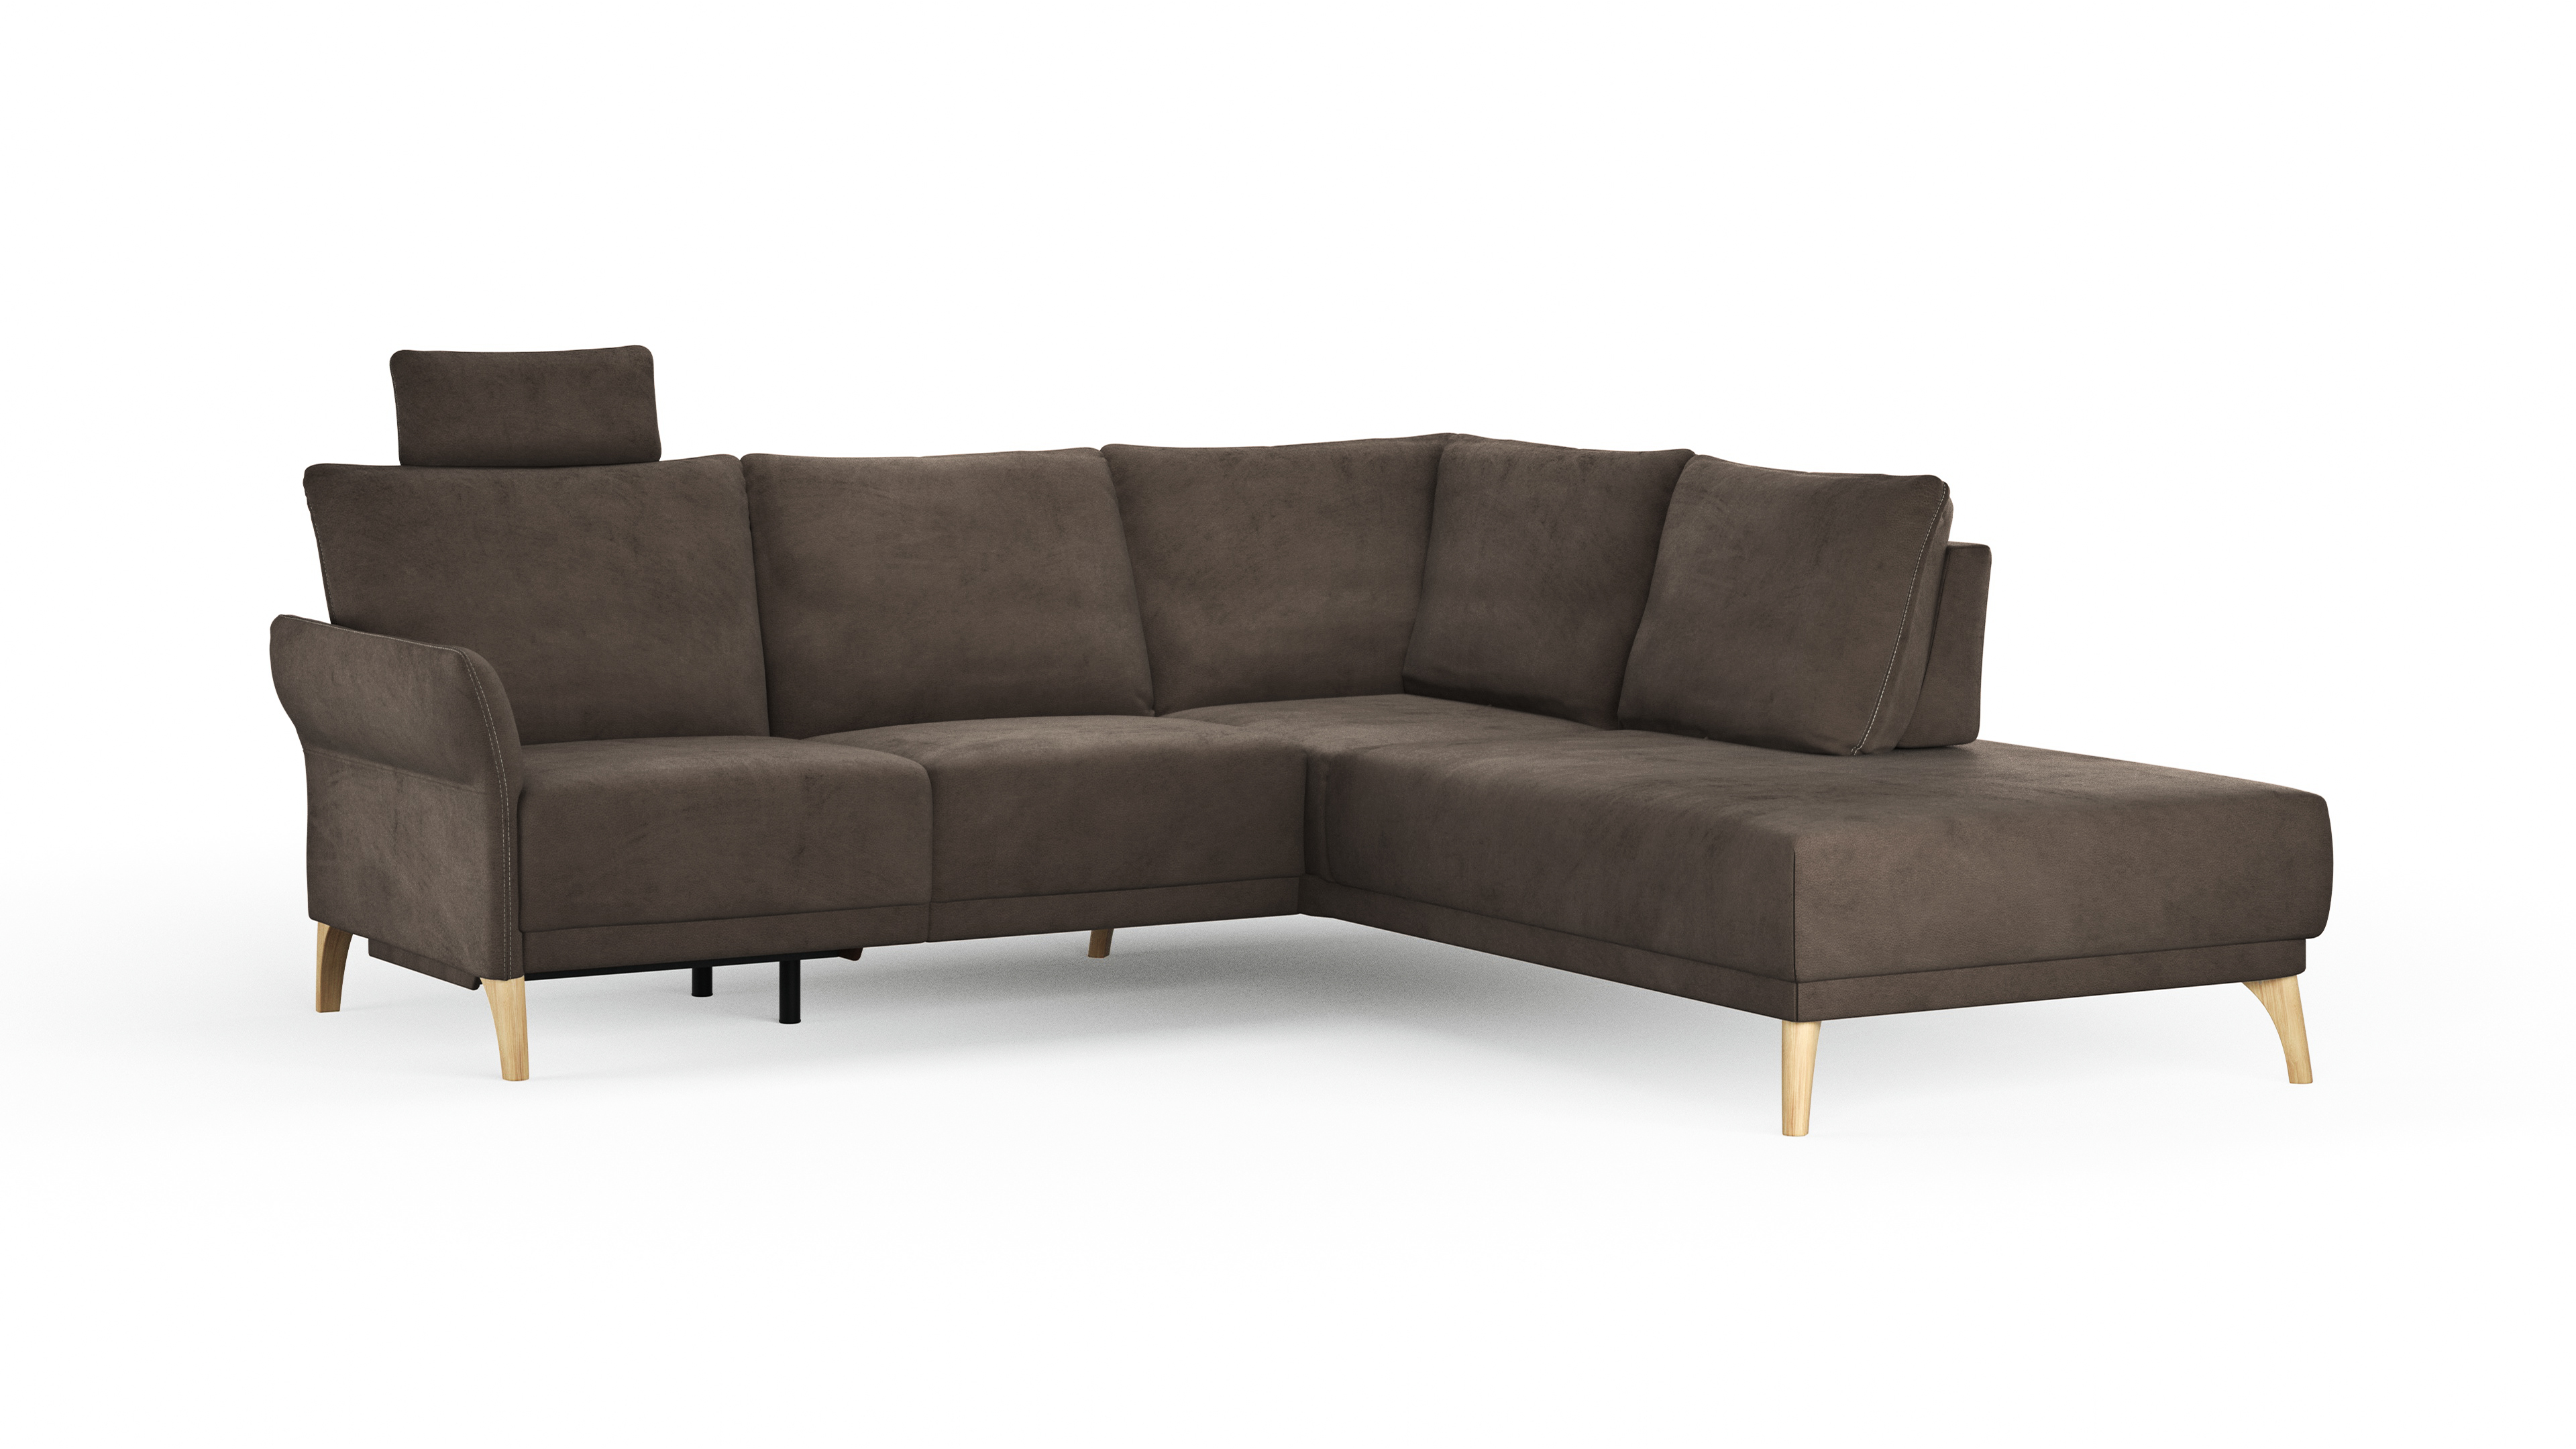 Global Comfort Ecksofa Rosario freisteller 1 102537 | Homepoet